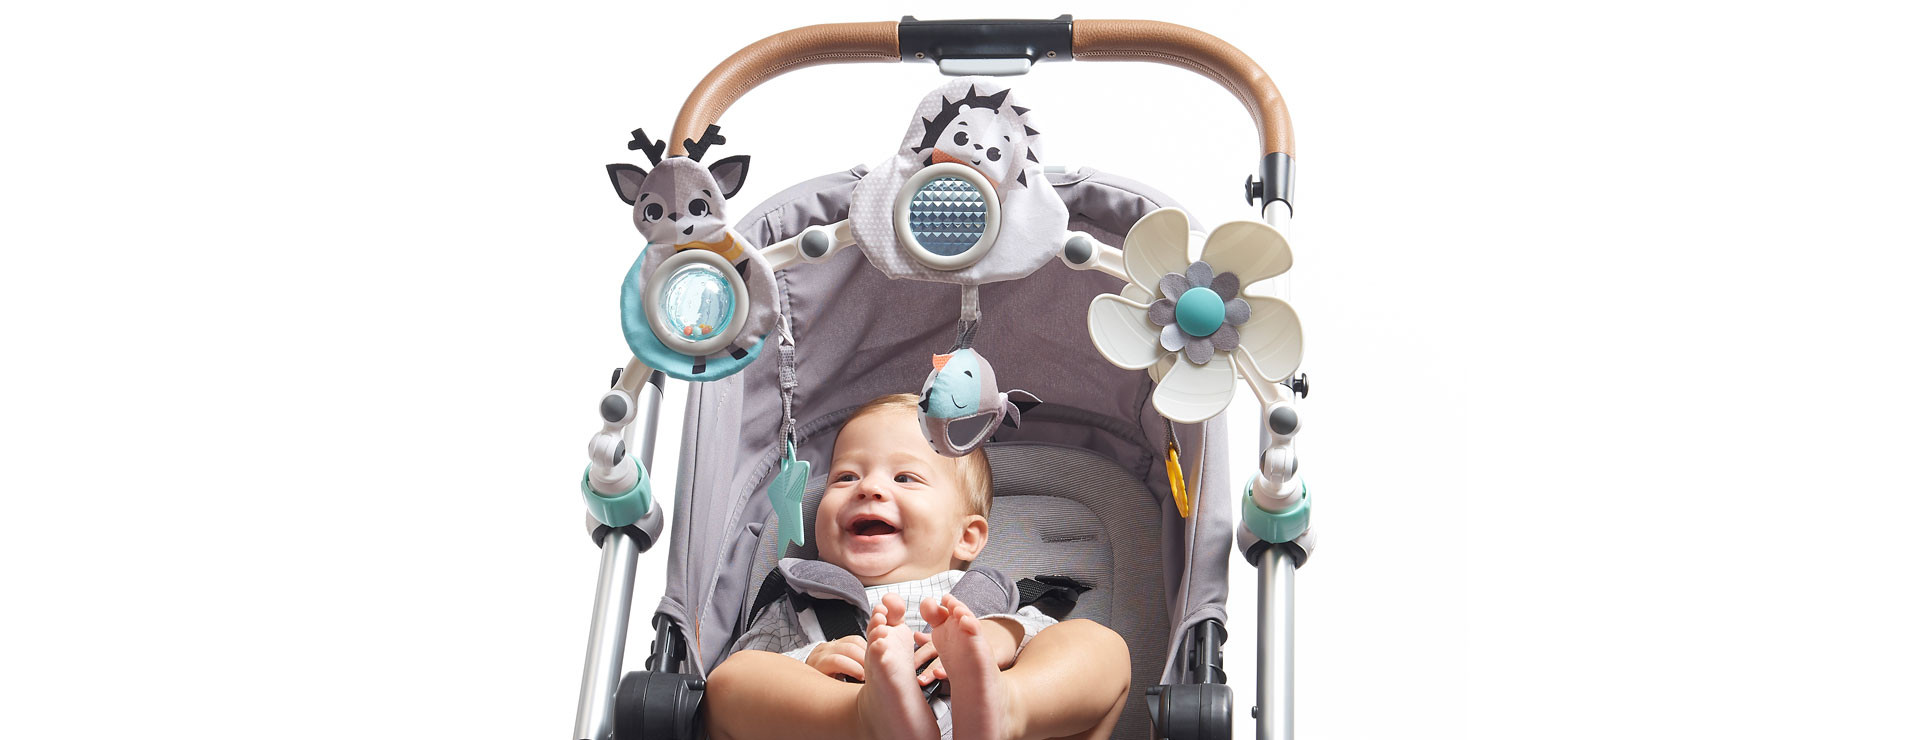 Switch the arch from bassinet to stroller from age 5 months and up